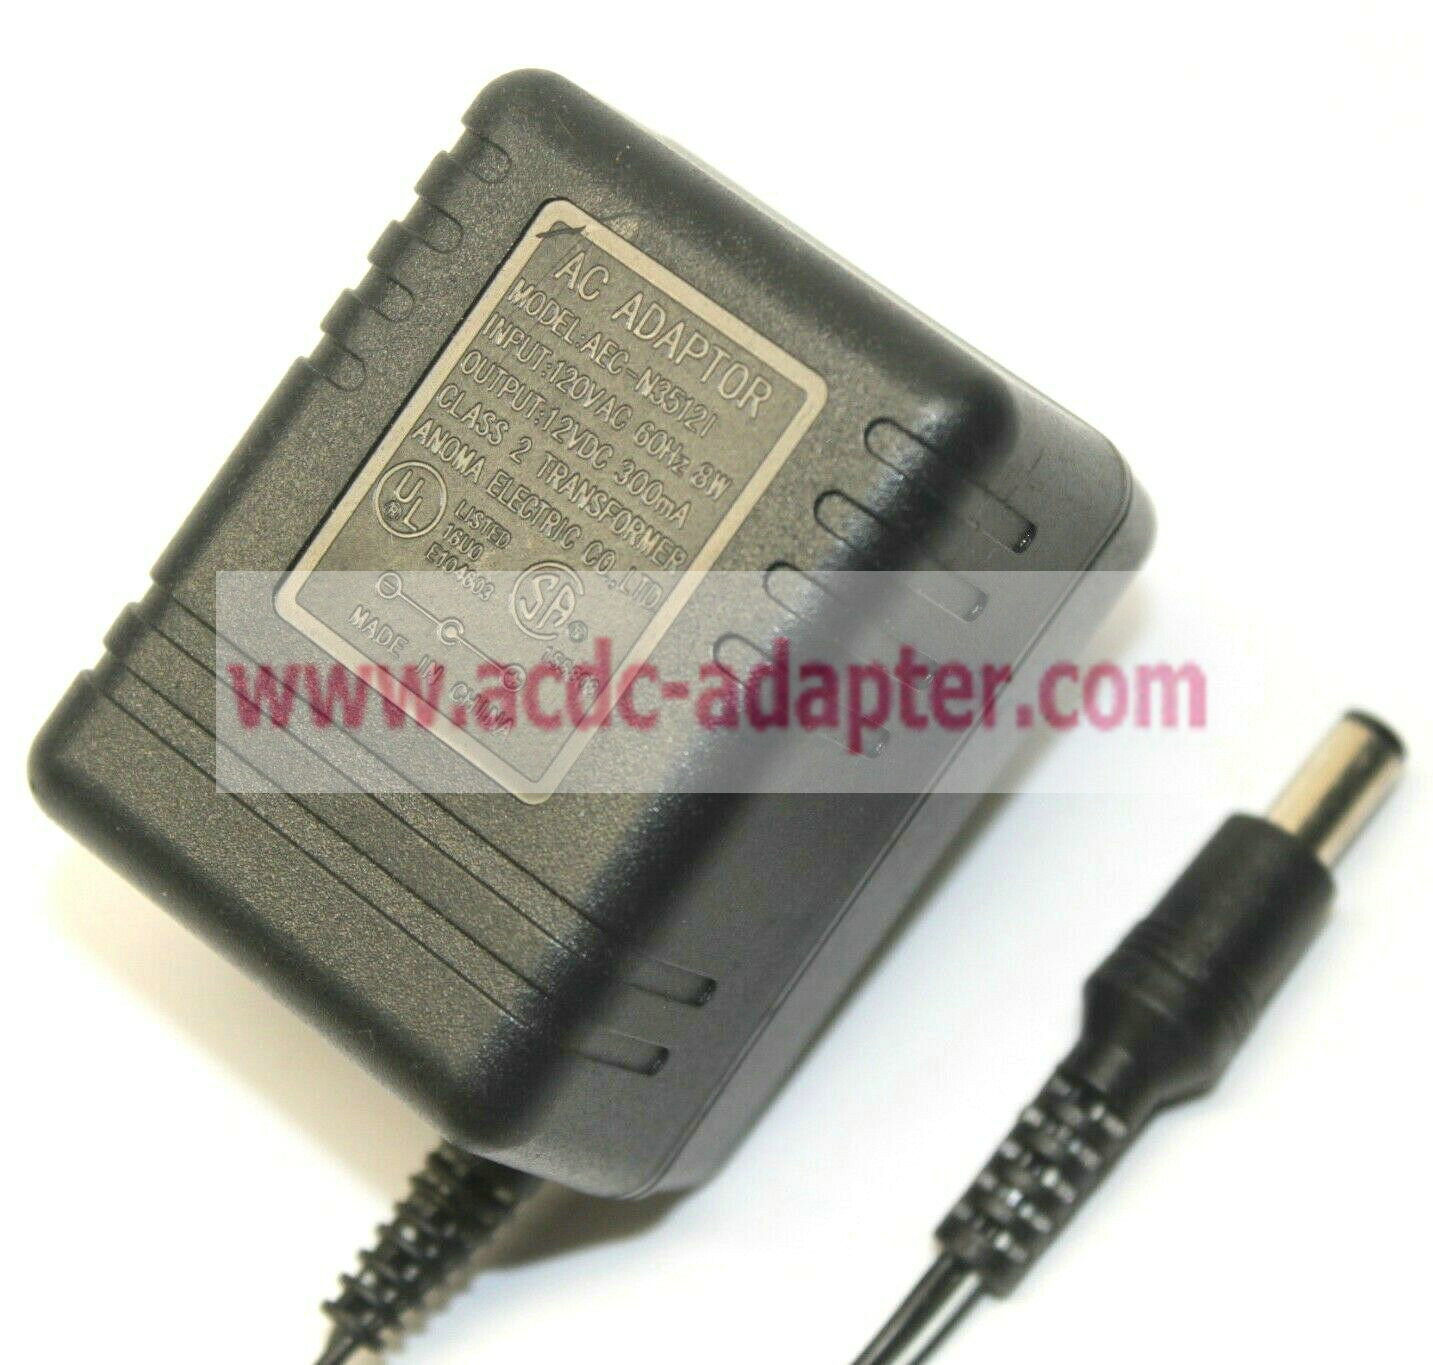 KEIC SC102TA1503B03 ITE Power Supply AC Adapter Charger Output DC 15 V 1.2A